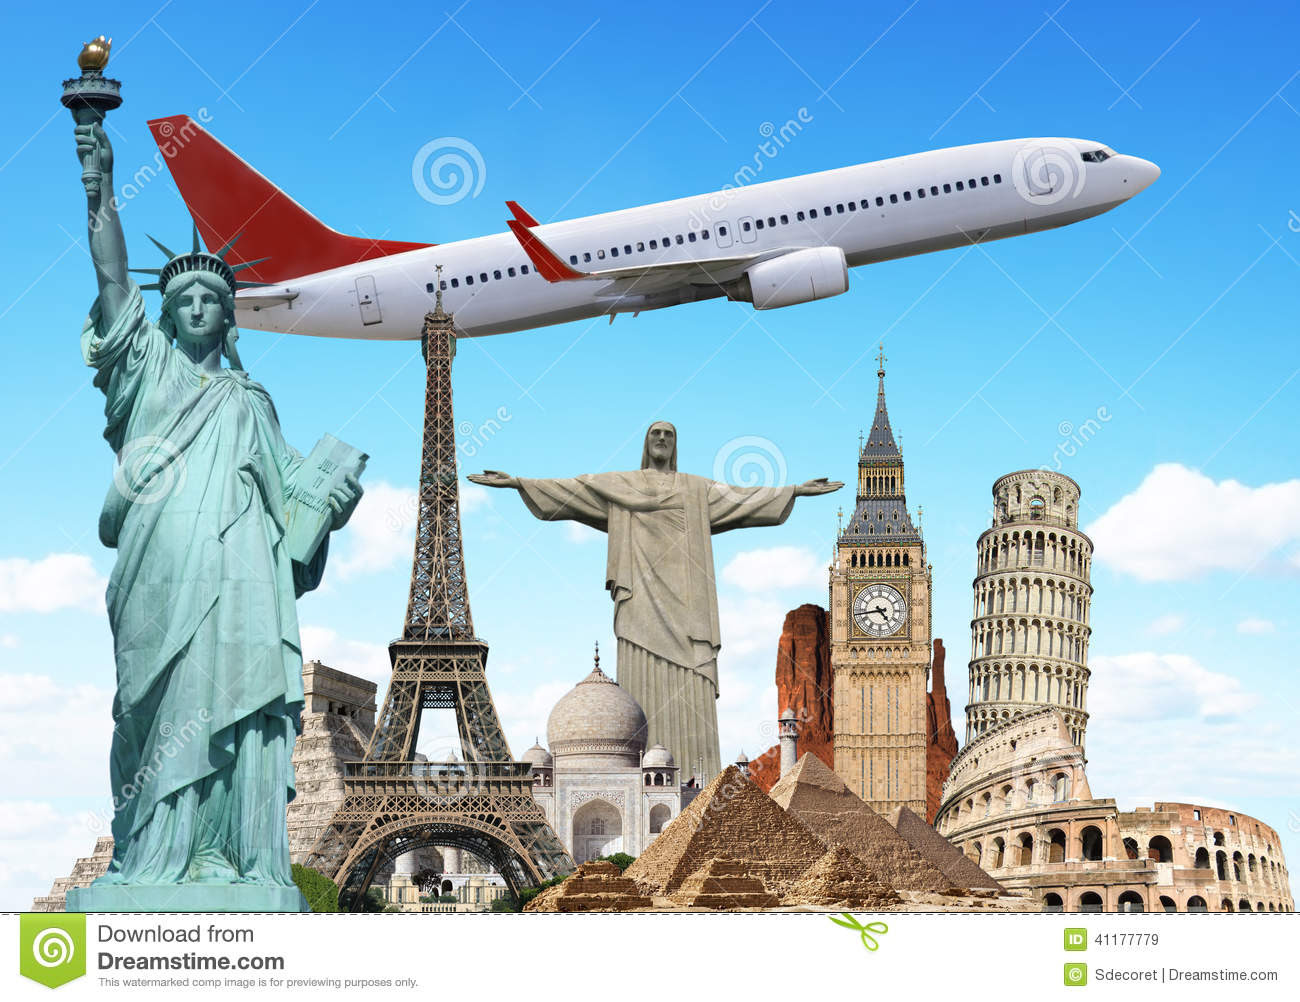 travel world monuments plane concept famous illustrating holidays 41177779